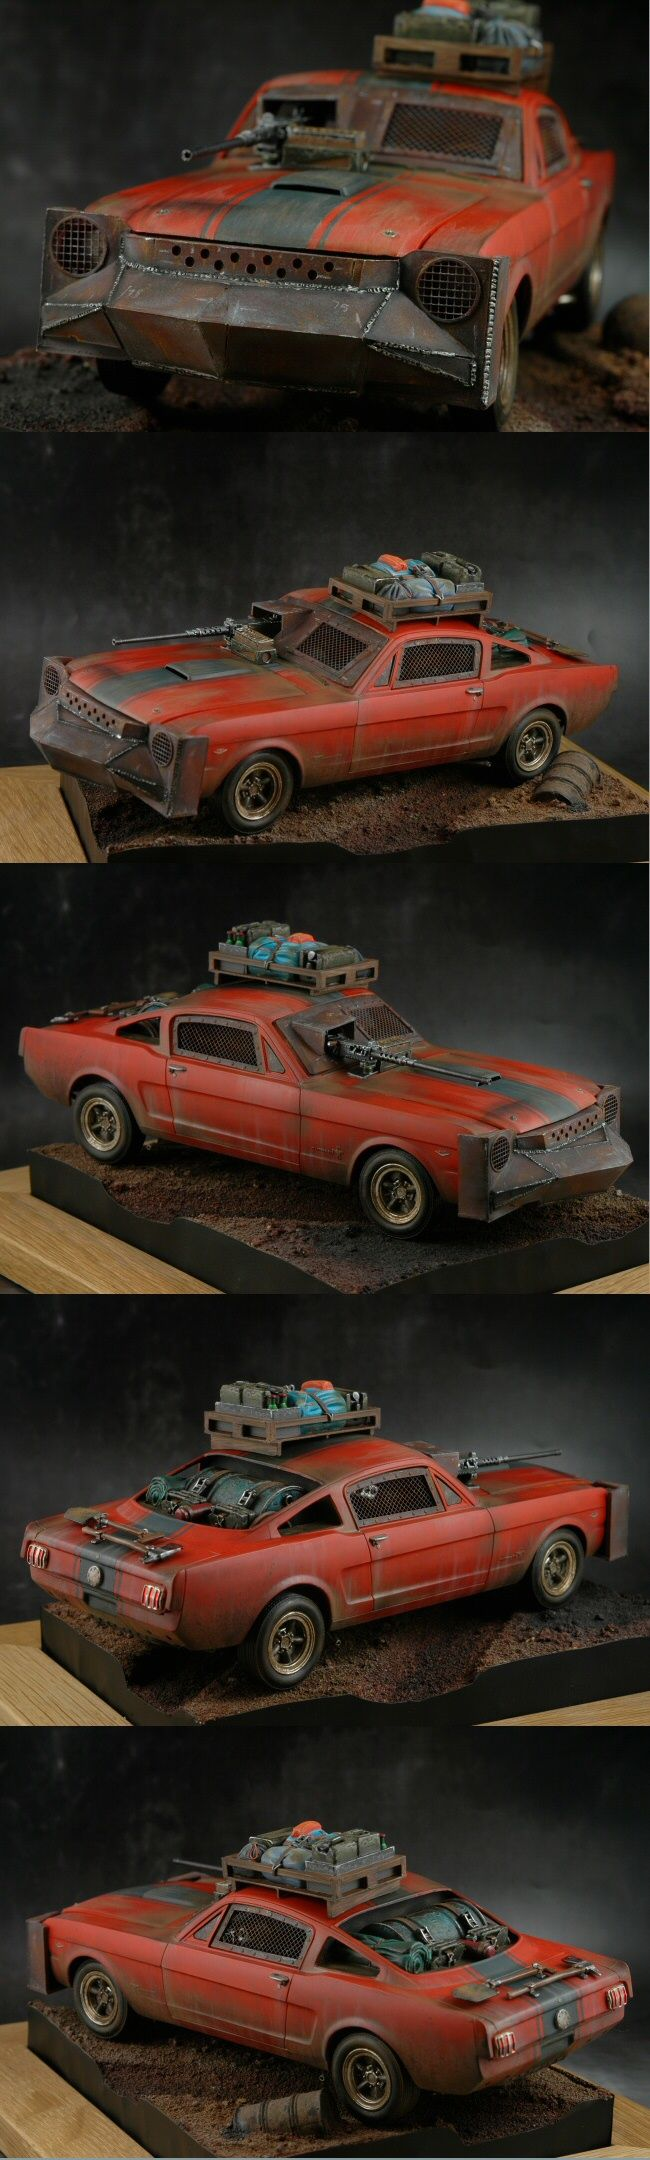 '66 Ford Shelby Zombie Hunter